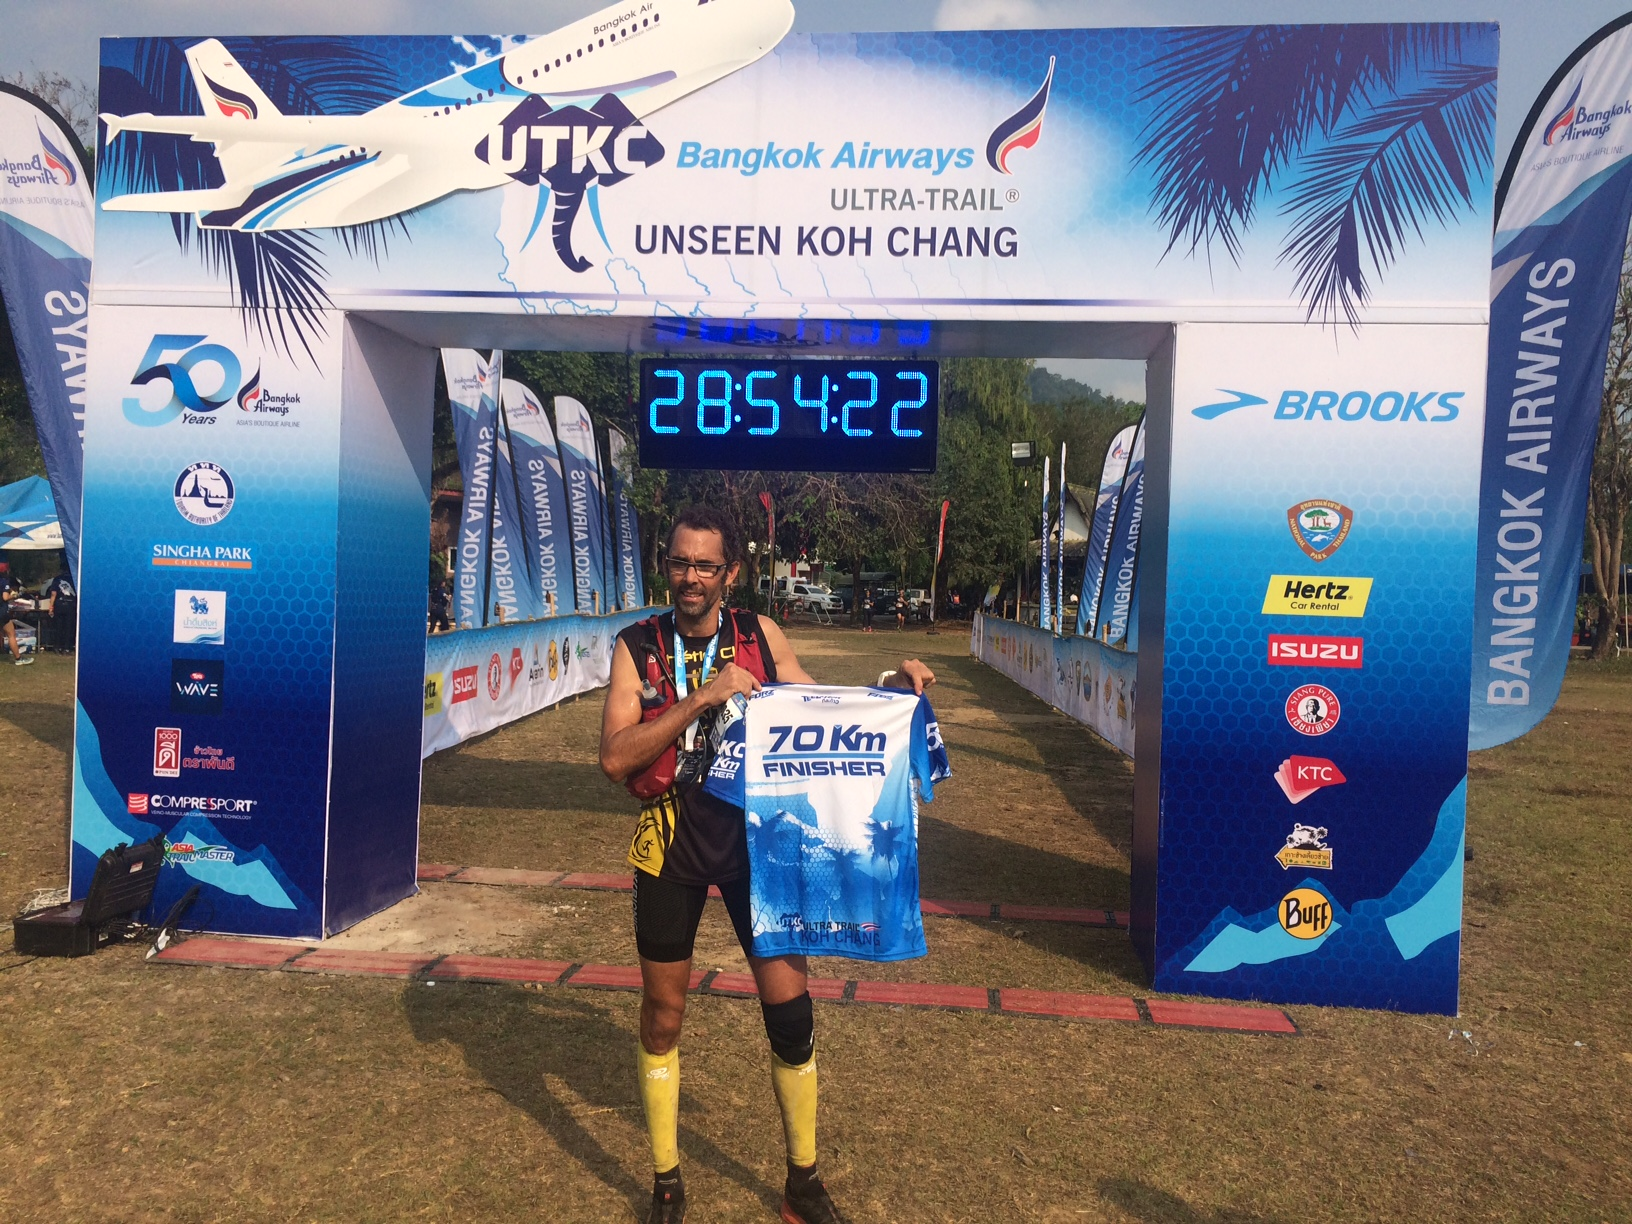 Fabien Bencler from New Caledonia won the 70K race